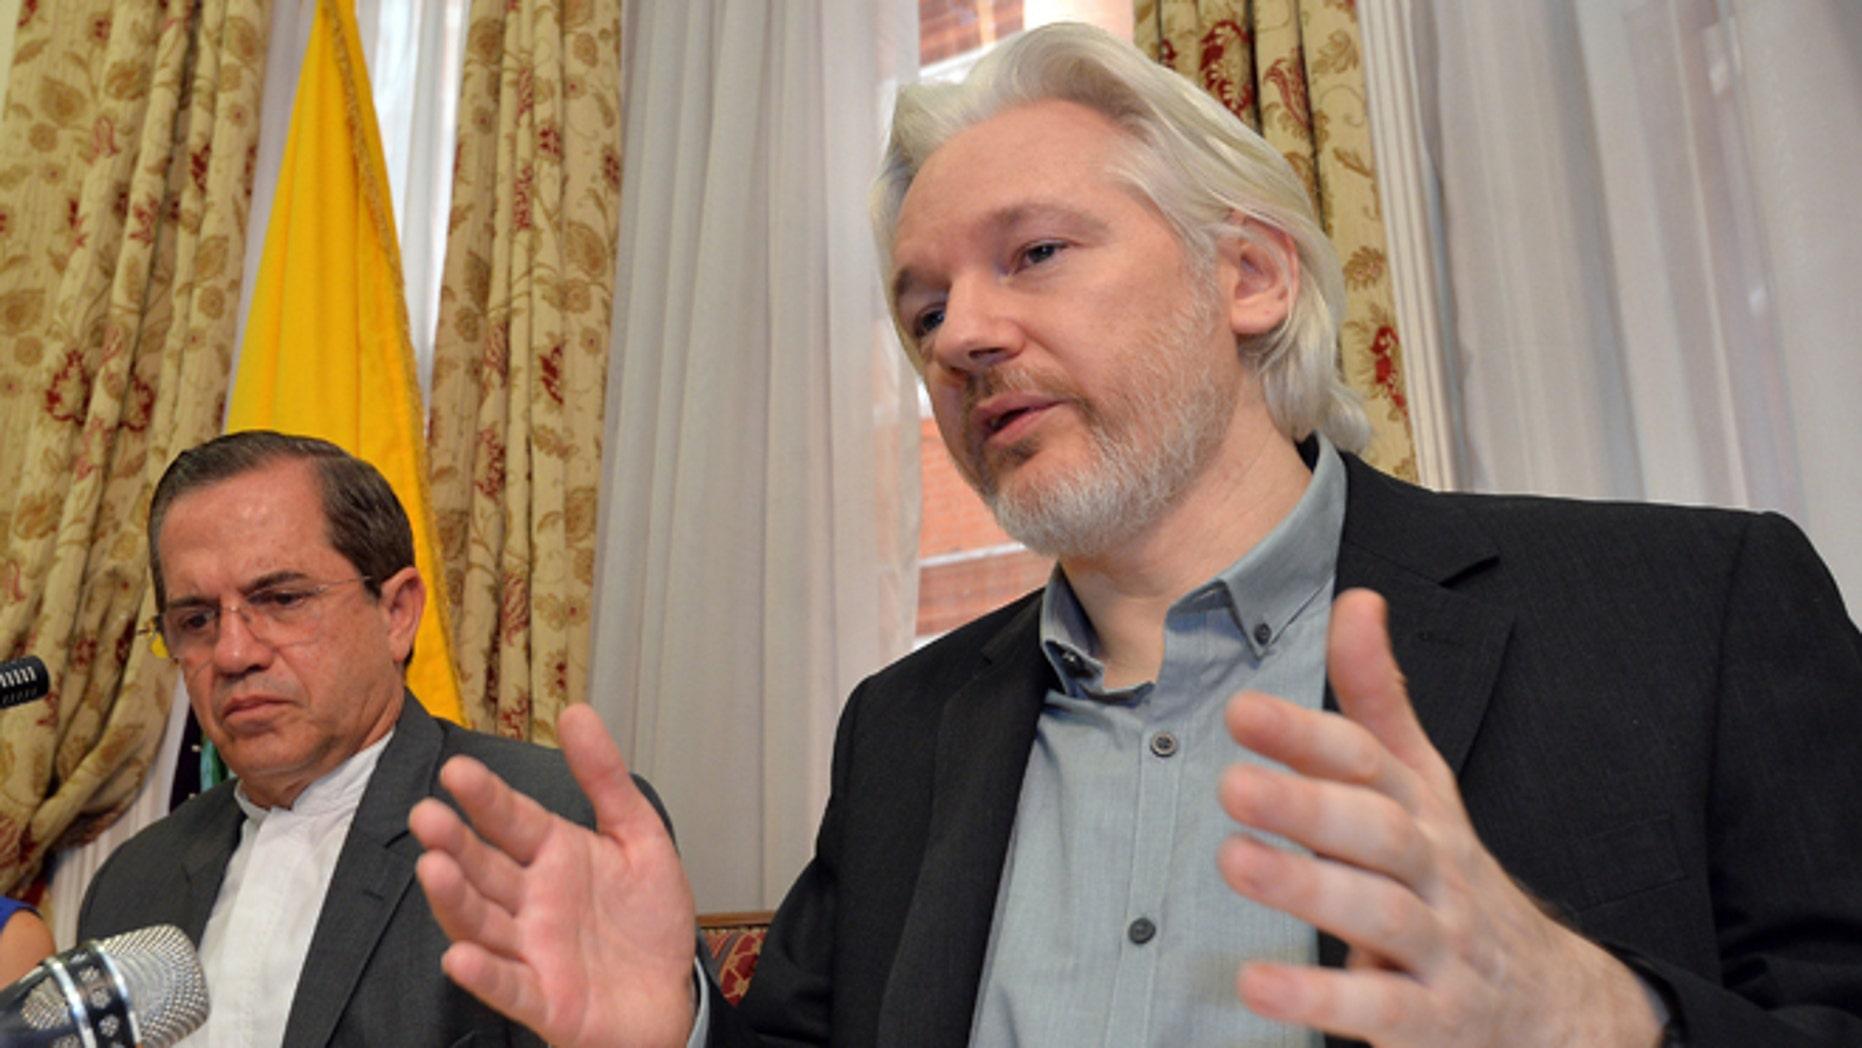 """LONDON, ENGLAND - AUGUST 18:  WikiLeaks founder Julian Assange (R) sits next to Ecuadorian Foreign Minister Ricardo Patino during a press conference, where he confirmed he """"will be leaving the embassy soon"""", in the Ecuadorian Embassy on August 18, 2014 in London, England. Mr Assange has been living in the embassy since June 2012 in an attempt to avoid extradition to Sweden where he faces allegations of sexual assault.  (Photo by John Stillwell - WPA Pool/Getty Images)"""